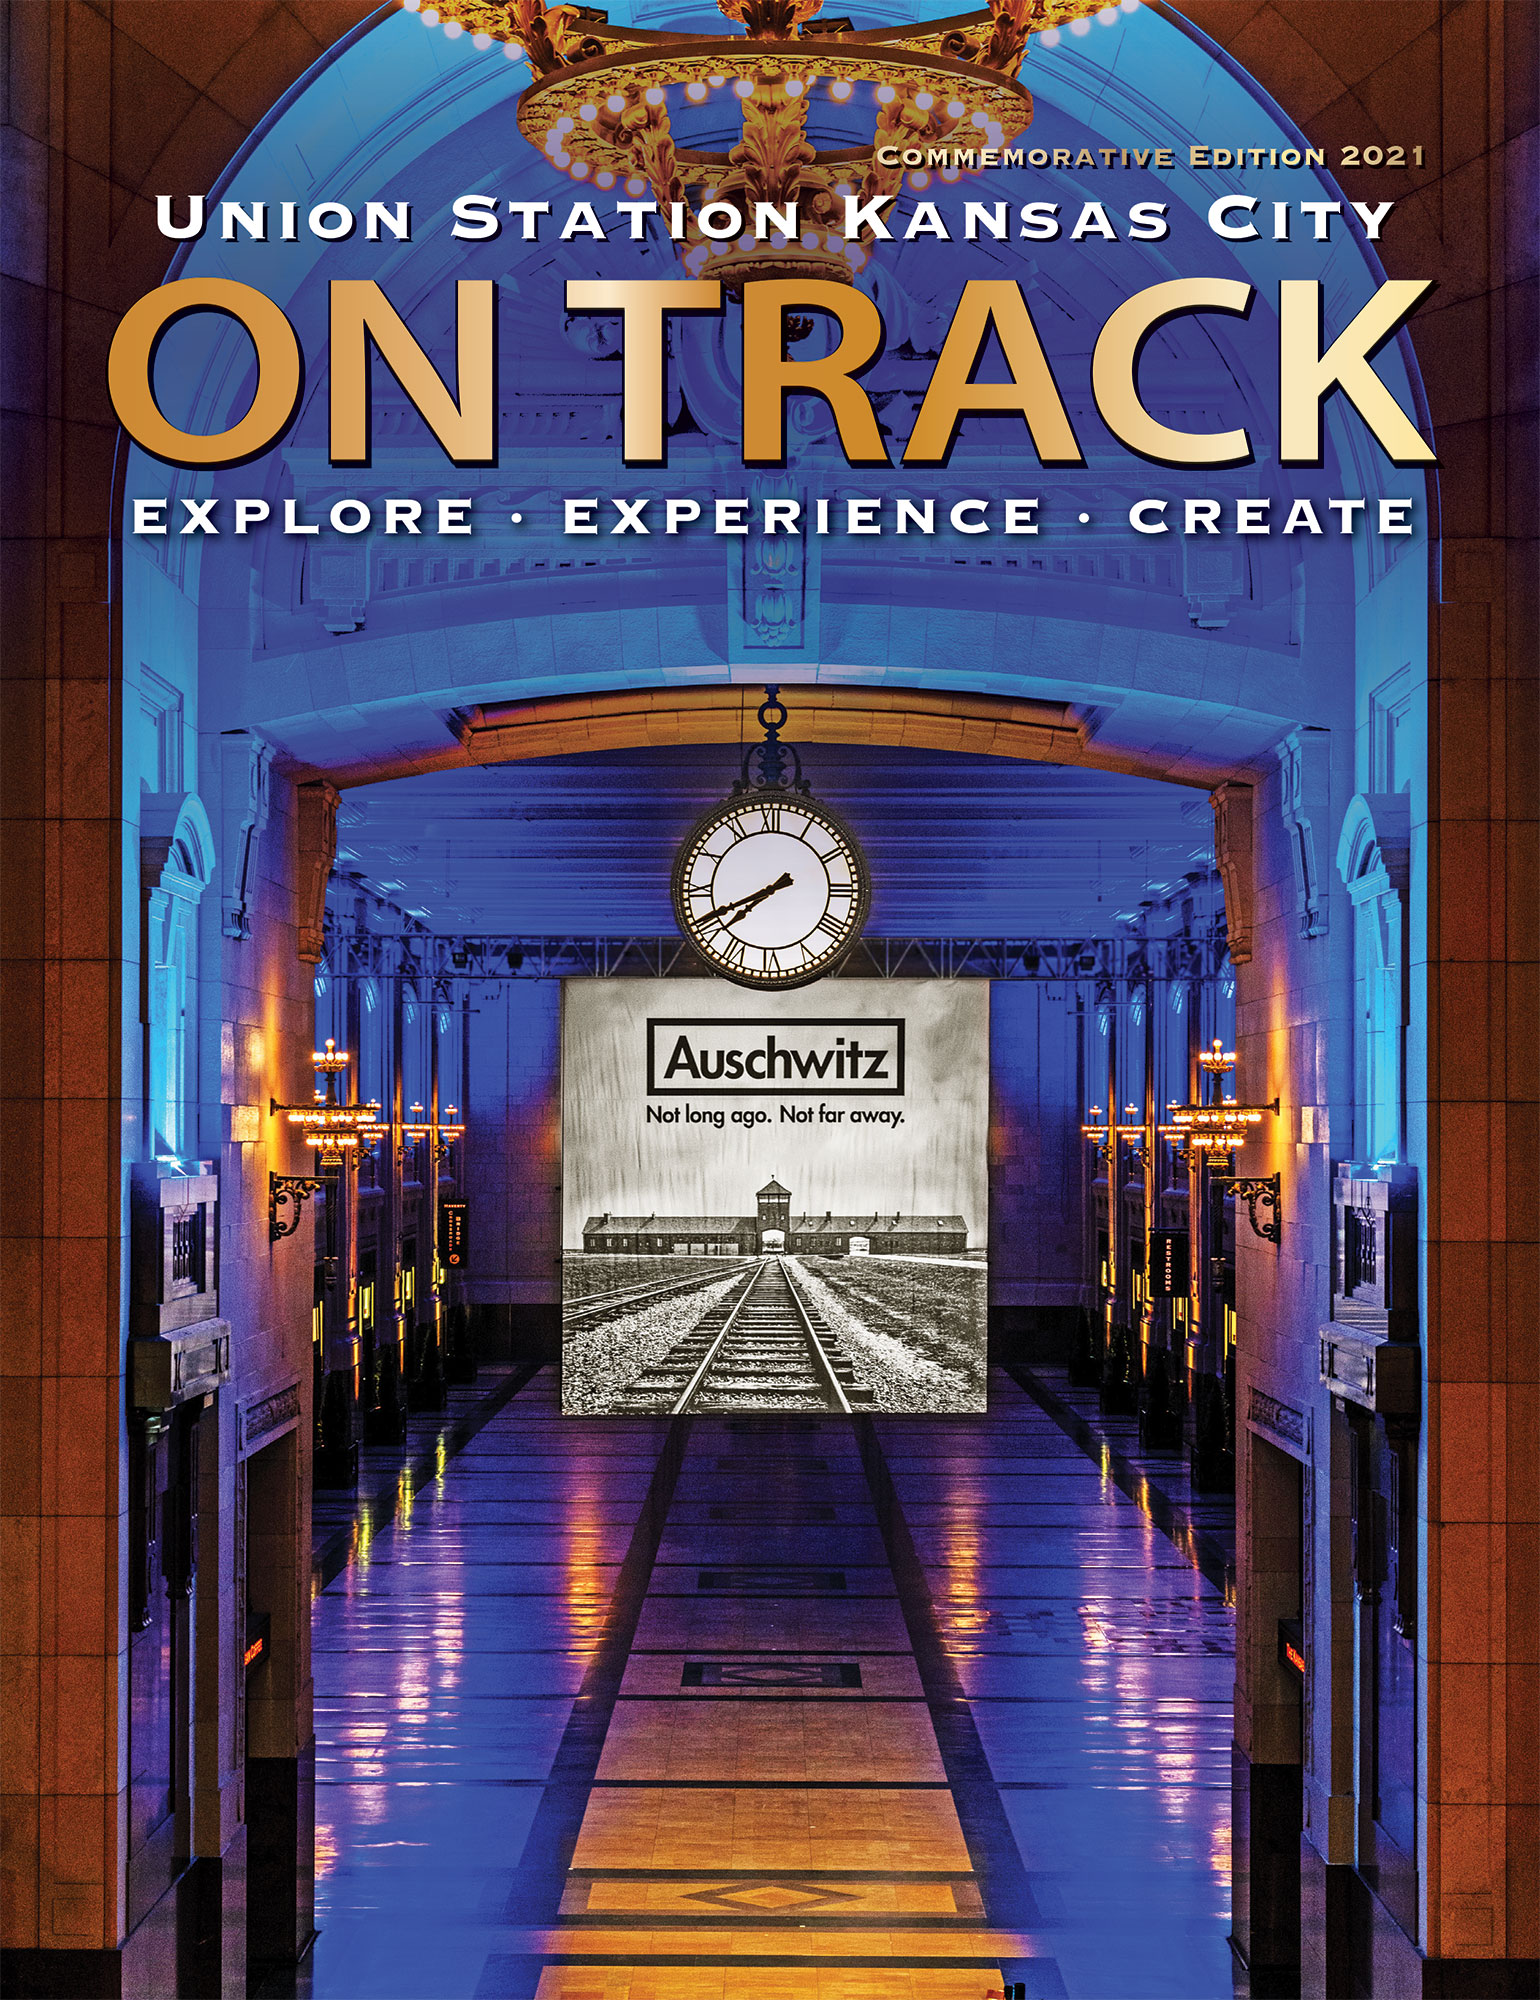 On Track Cover - Auschwitz